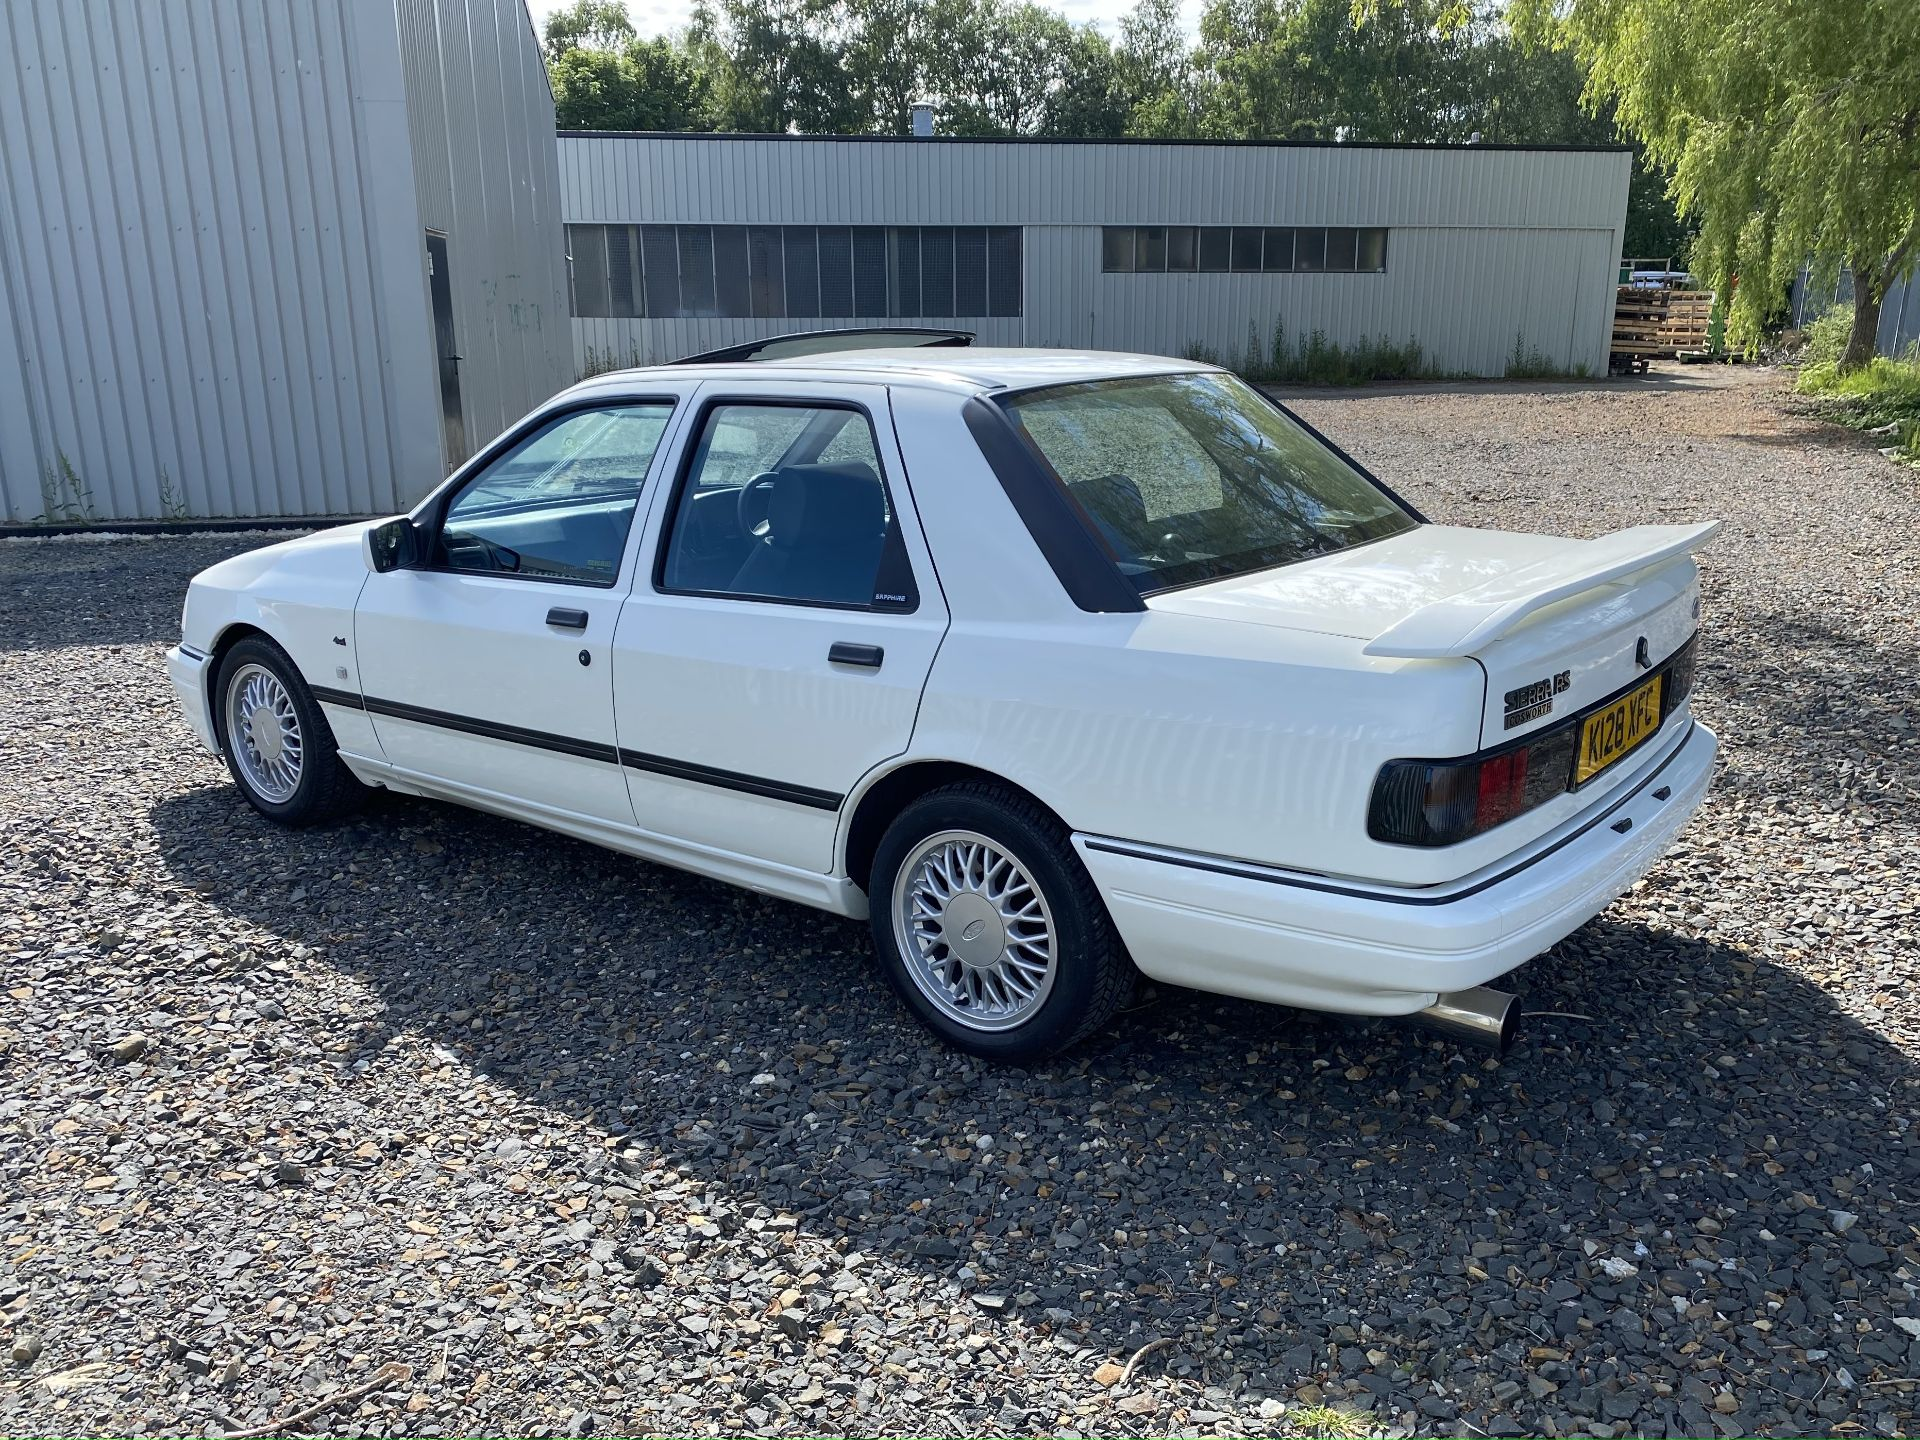 Ford Sierra Sapphire Cosworth 4x4 - Image 11 of 55